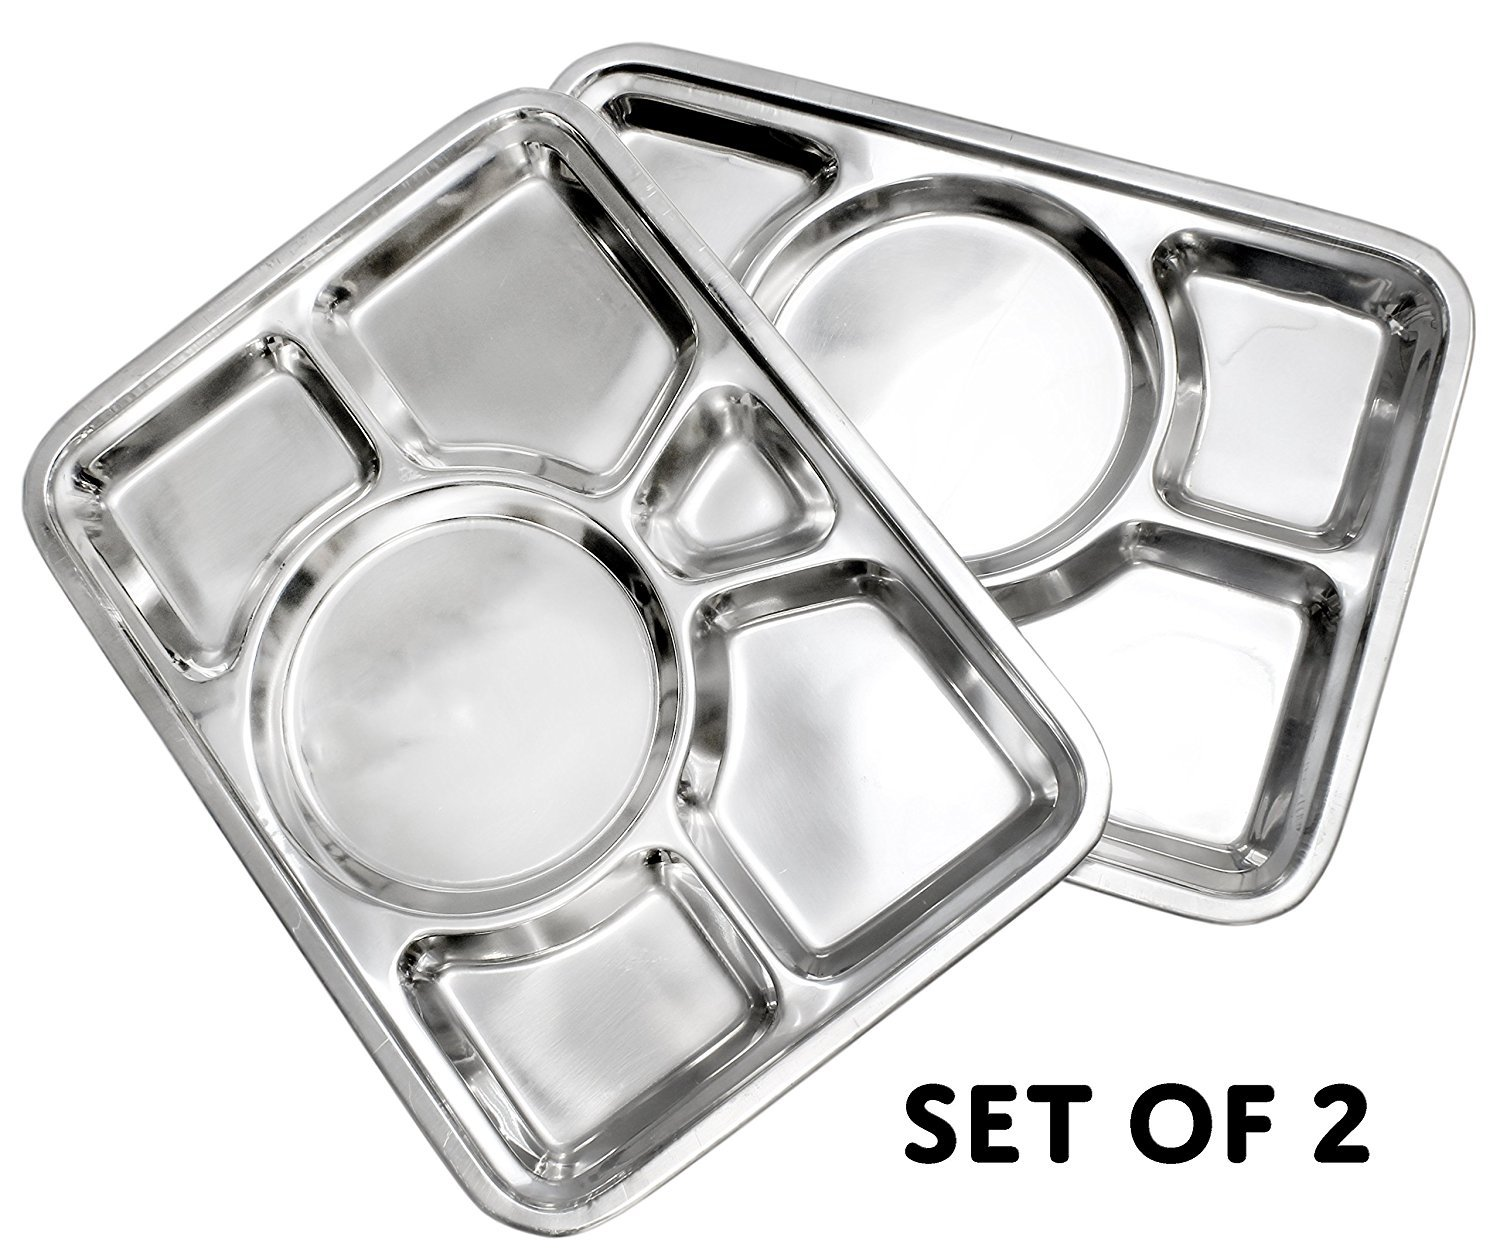 King International 100% Stainless Steel Six in one Dinner Plate Six sections divided plate Six section plate -Set of 2 Mess Trays Great for Camping, - 37 cm